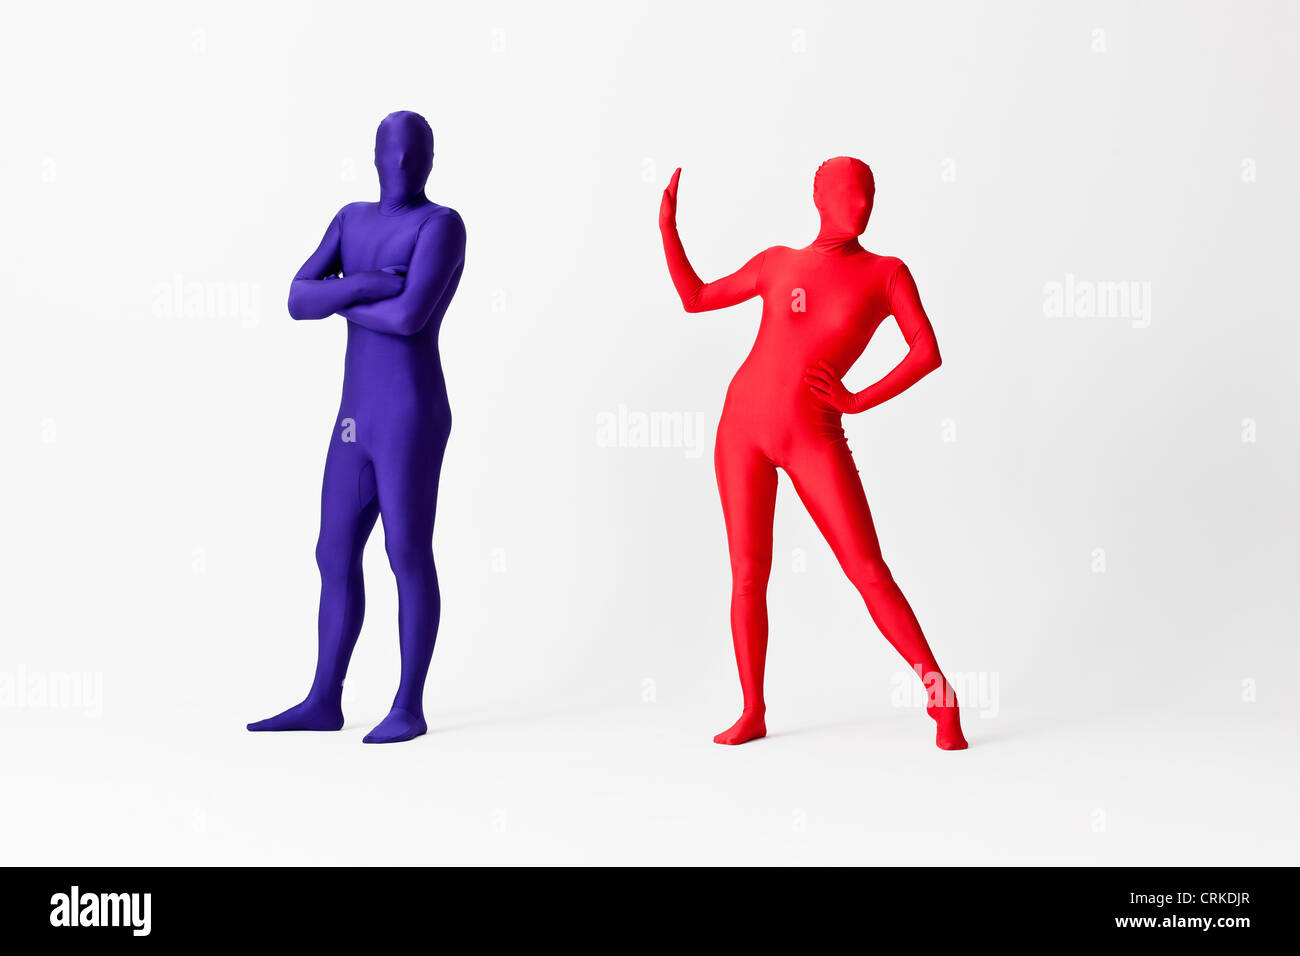 Couple in bodysuits arguing - Stock Image